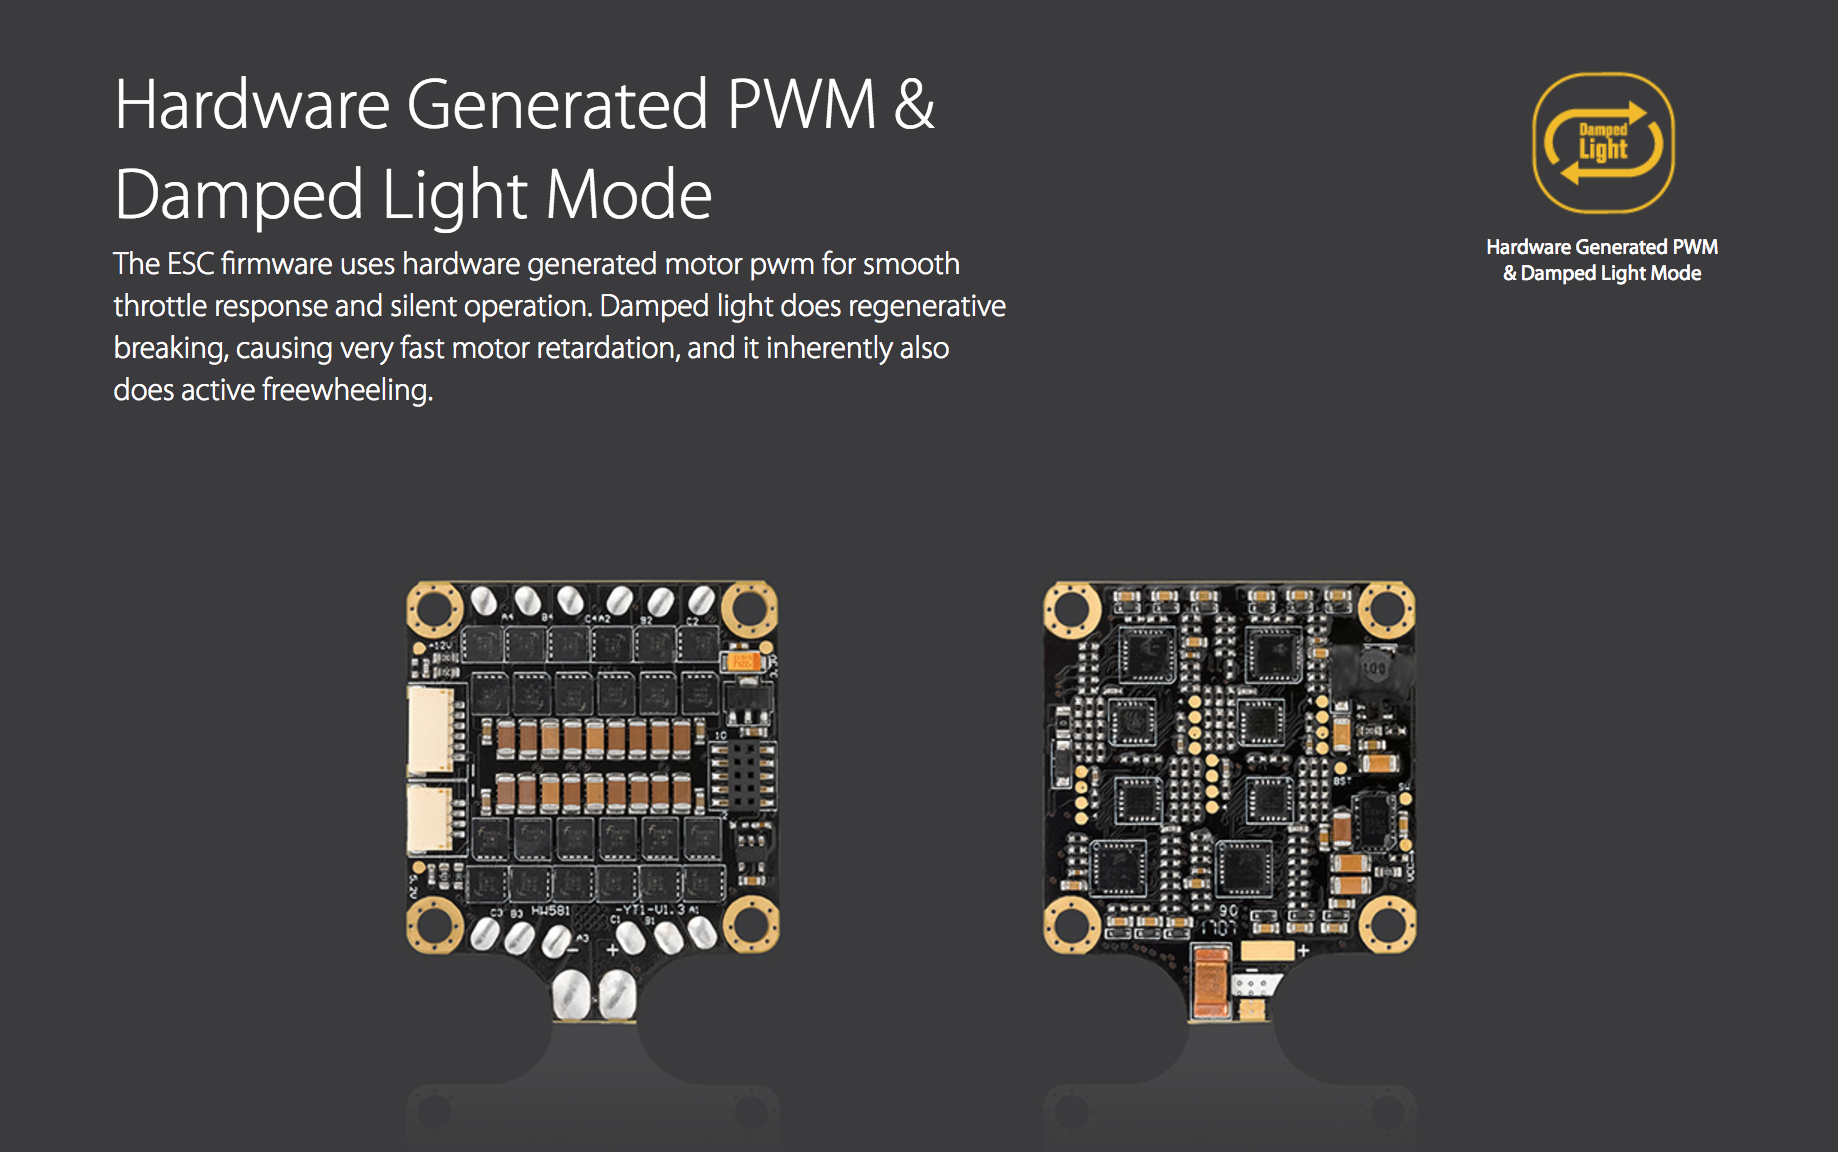 Hardware Generated PWM & Damped Light Mode. The ESC firmware uses hardware generated motor pwm for smooth throttle response and silent operation. Damped light does regenerative breaking, causing very fast motor retardation, and it inherently also does active freewheeling.